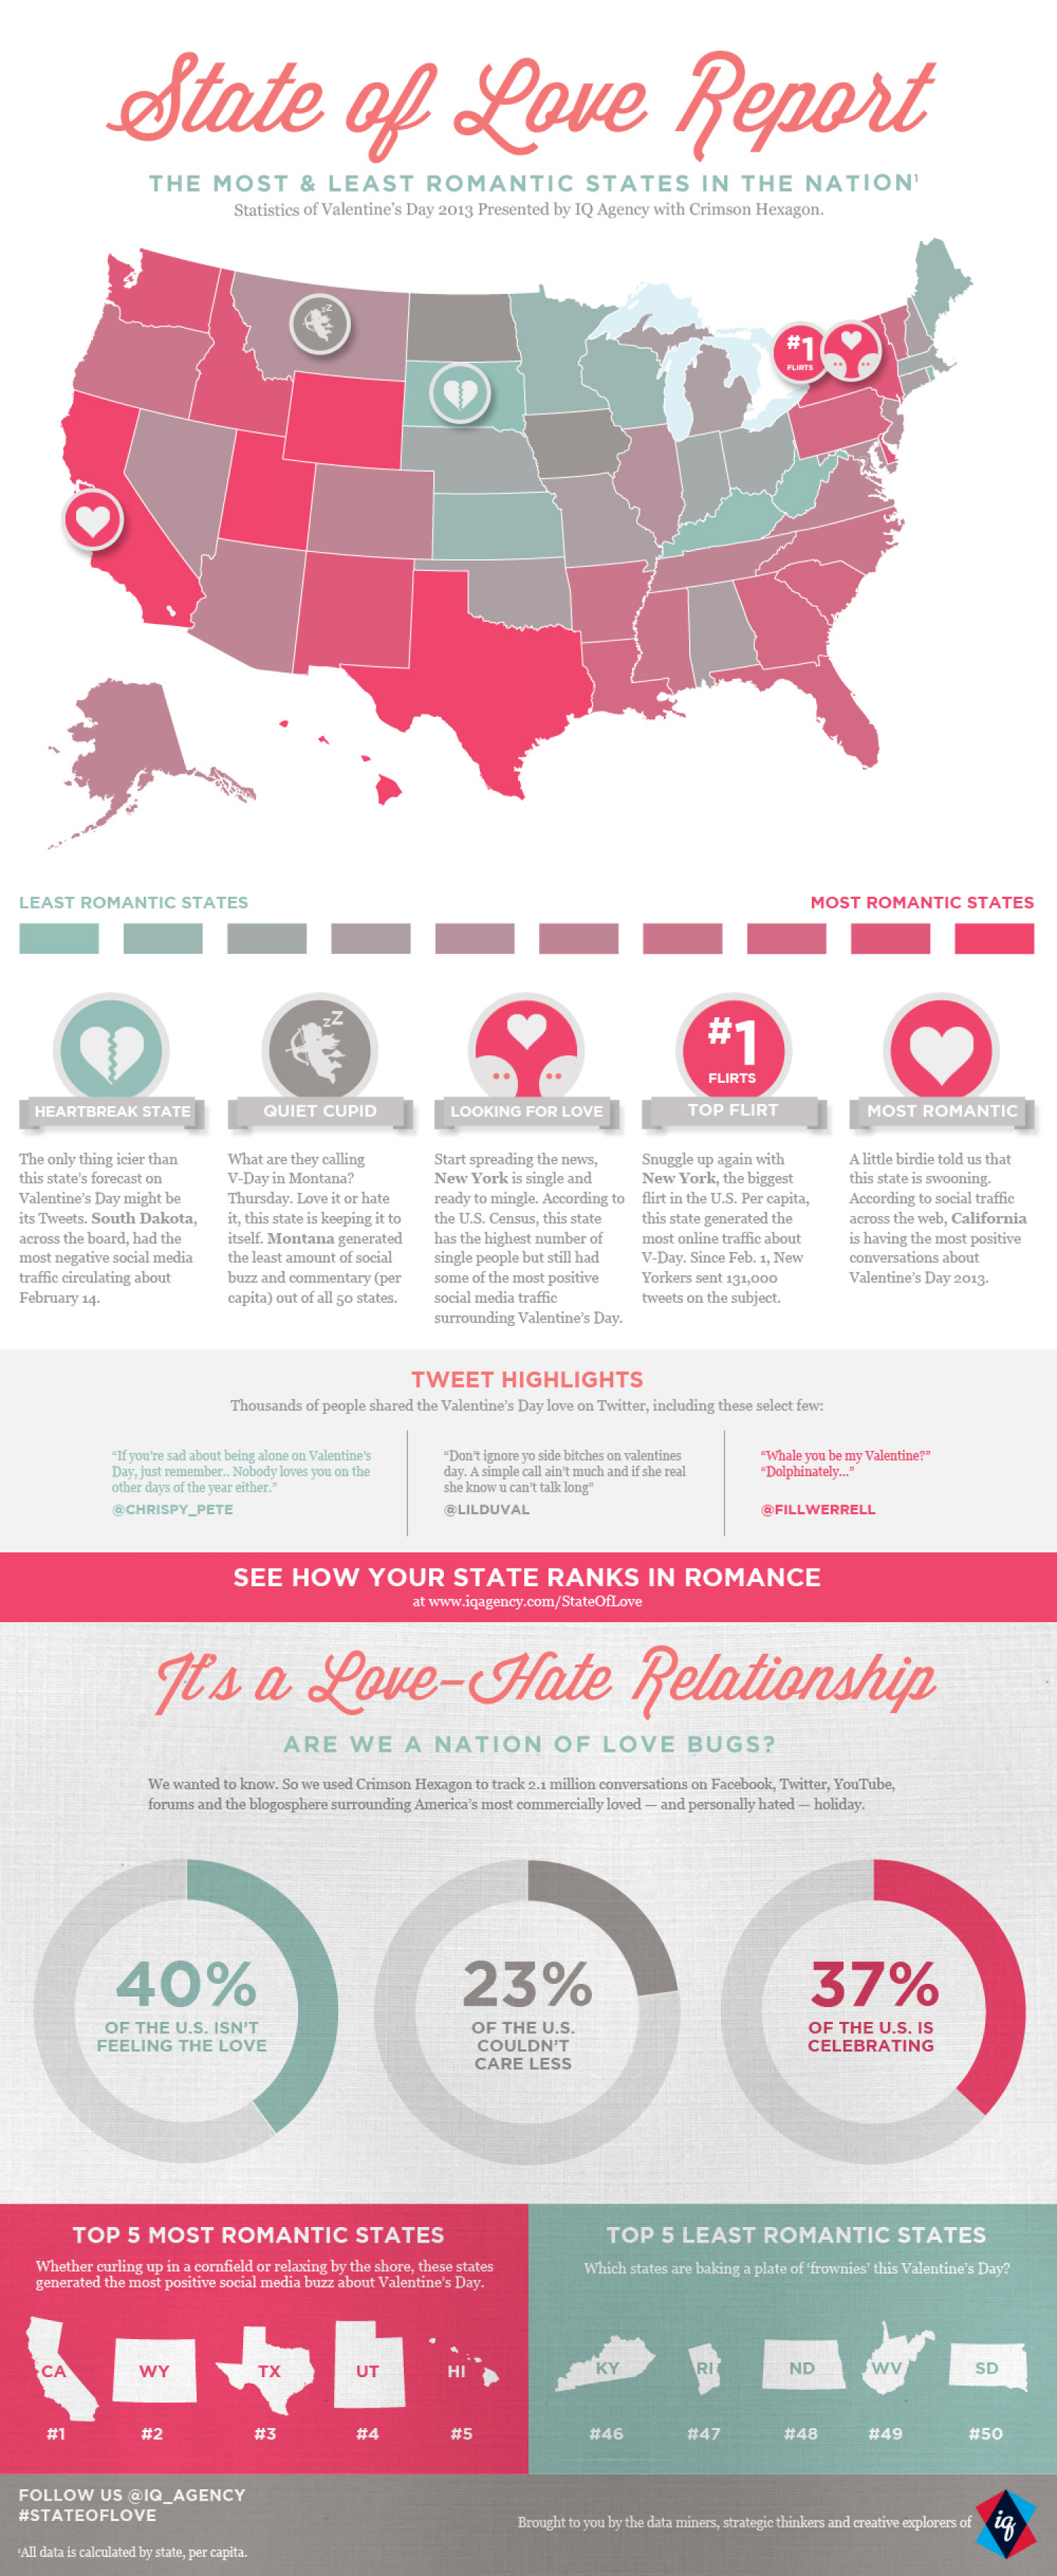 State of Love Report Infographic